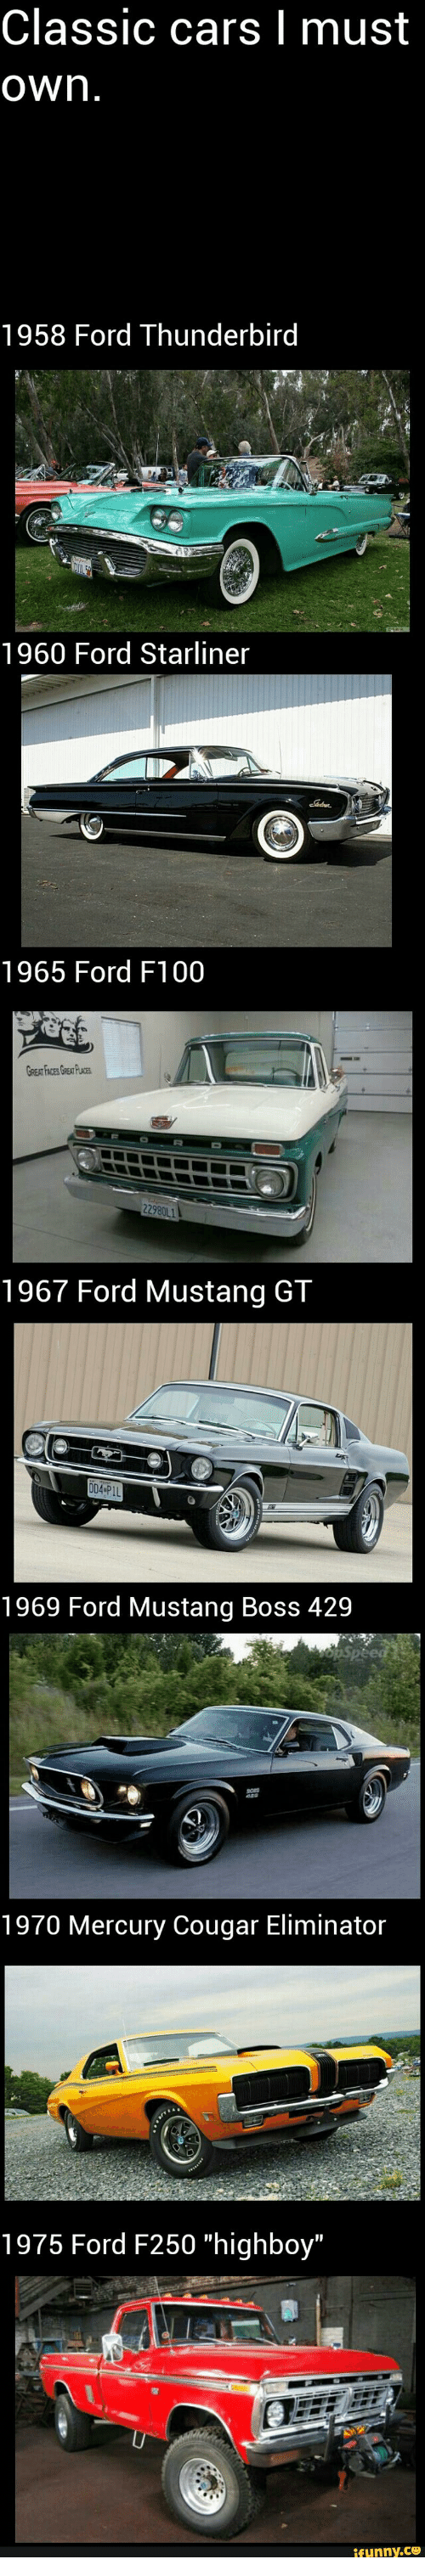 25 Best Memes About Ford F250 1969 F 250 Highboy 4x4 Cars Funny And Classic I Must Own 1958 Thunderbird 1960 Starliner 1965 F100 1967 Mustang Gt Boss 429